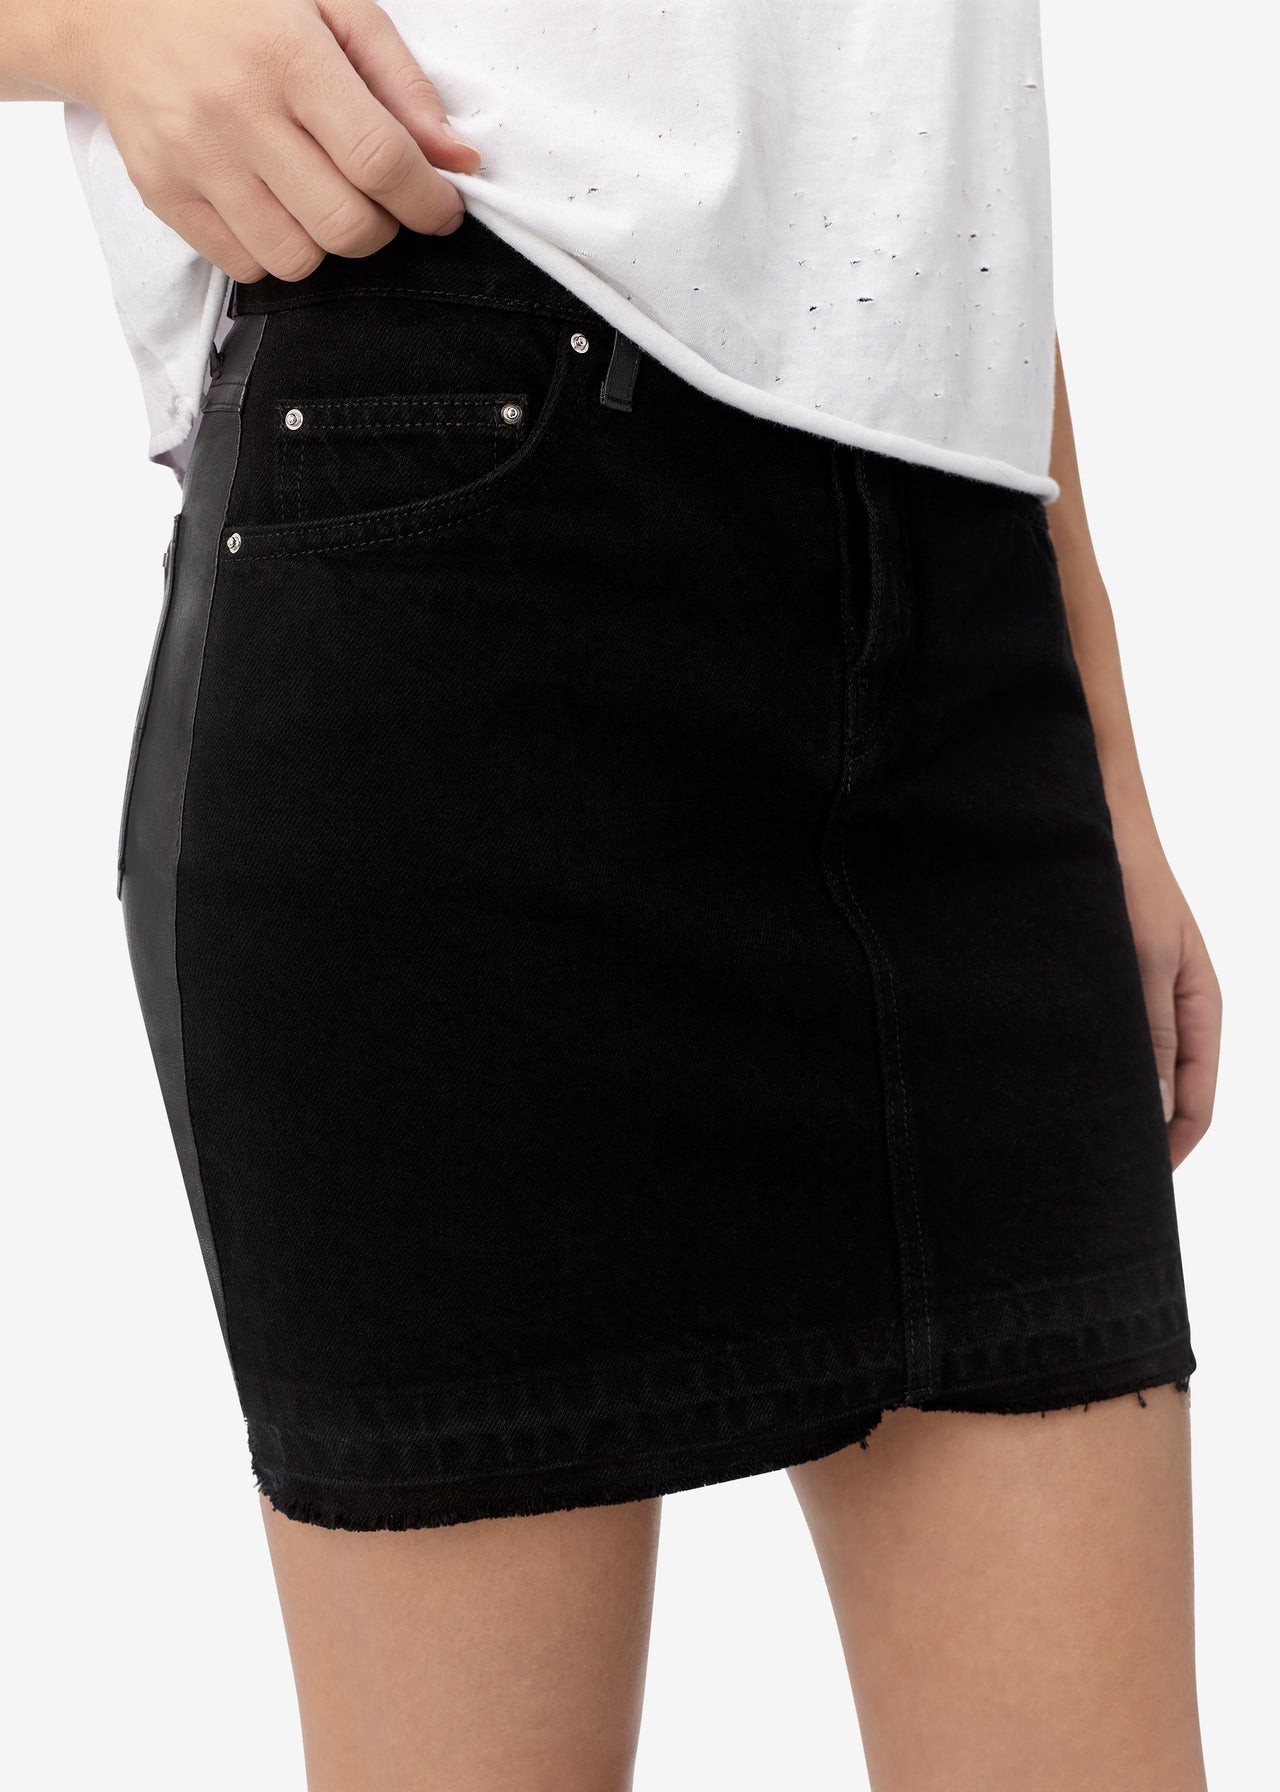 HIGH WAISTED SKIRT / LEATHER BACK - ANTIQUE BLACK